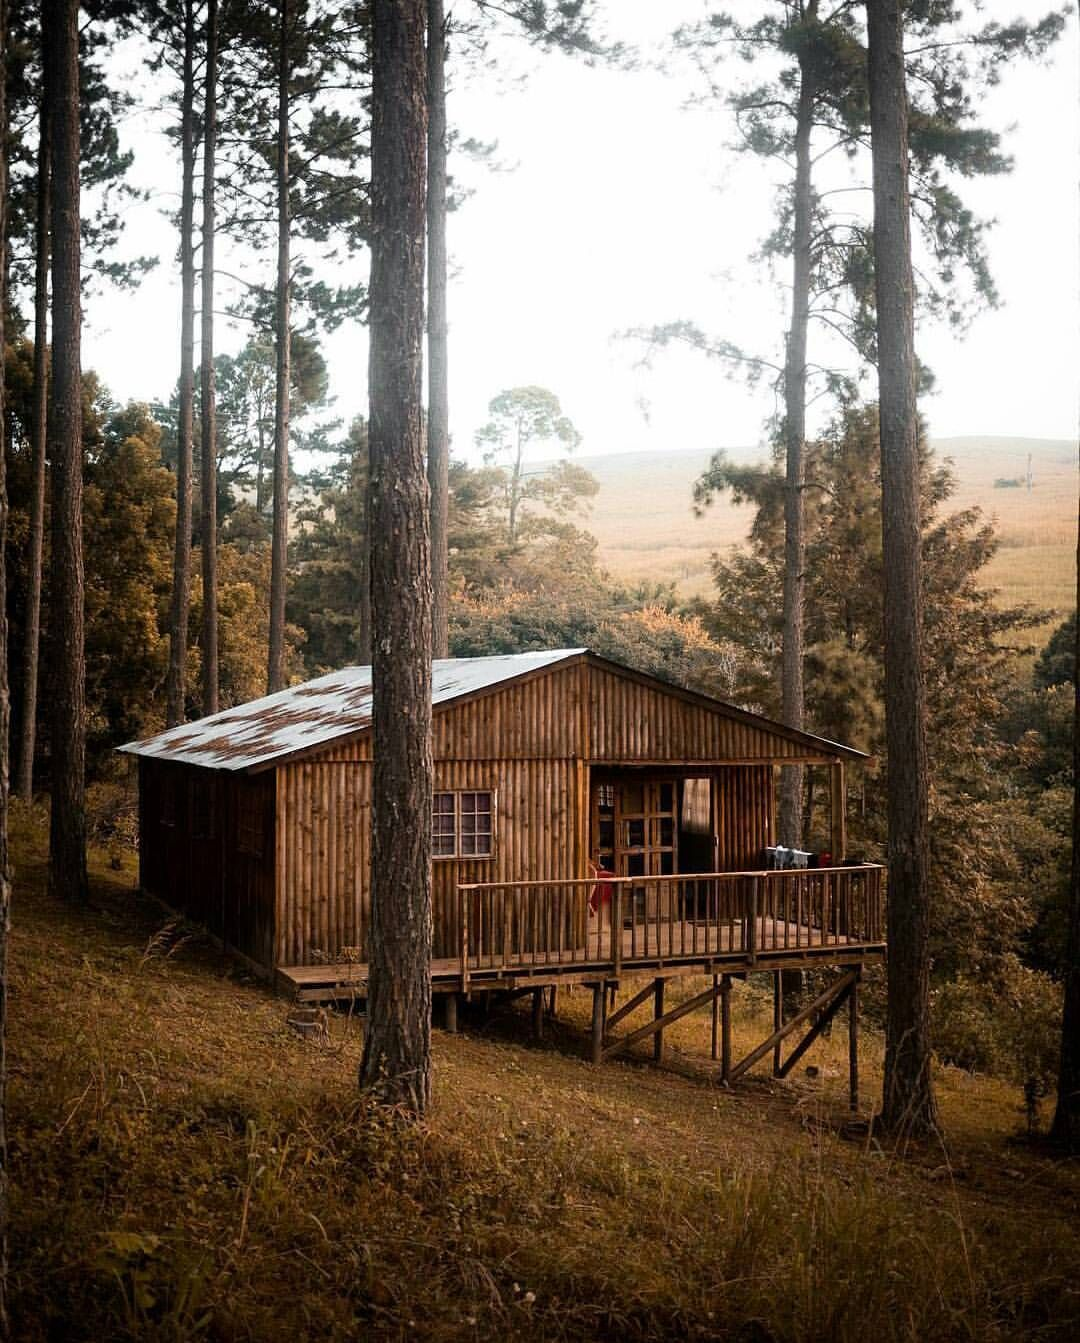 The Cabin Chronicles Cabin, Rustic cabin, Cabins in the